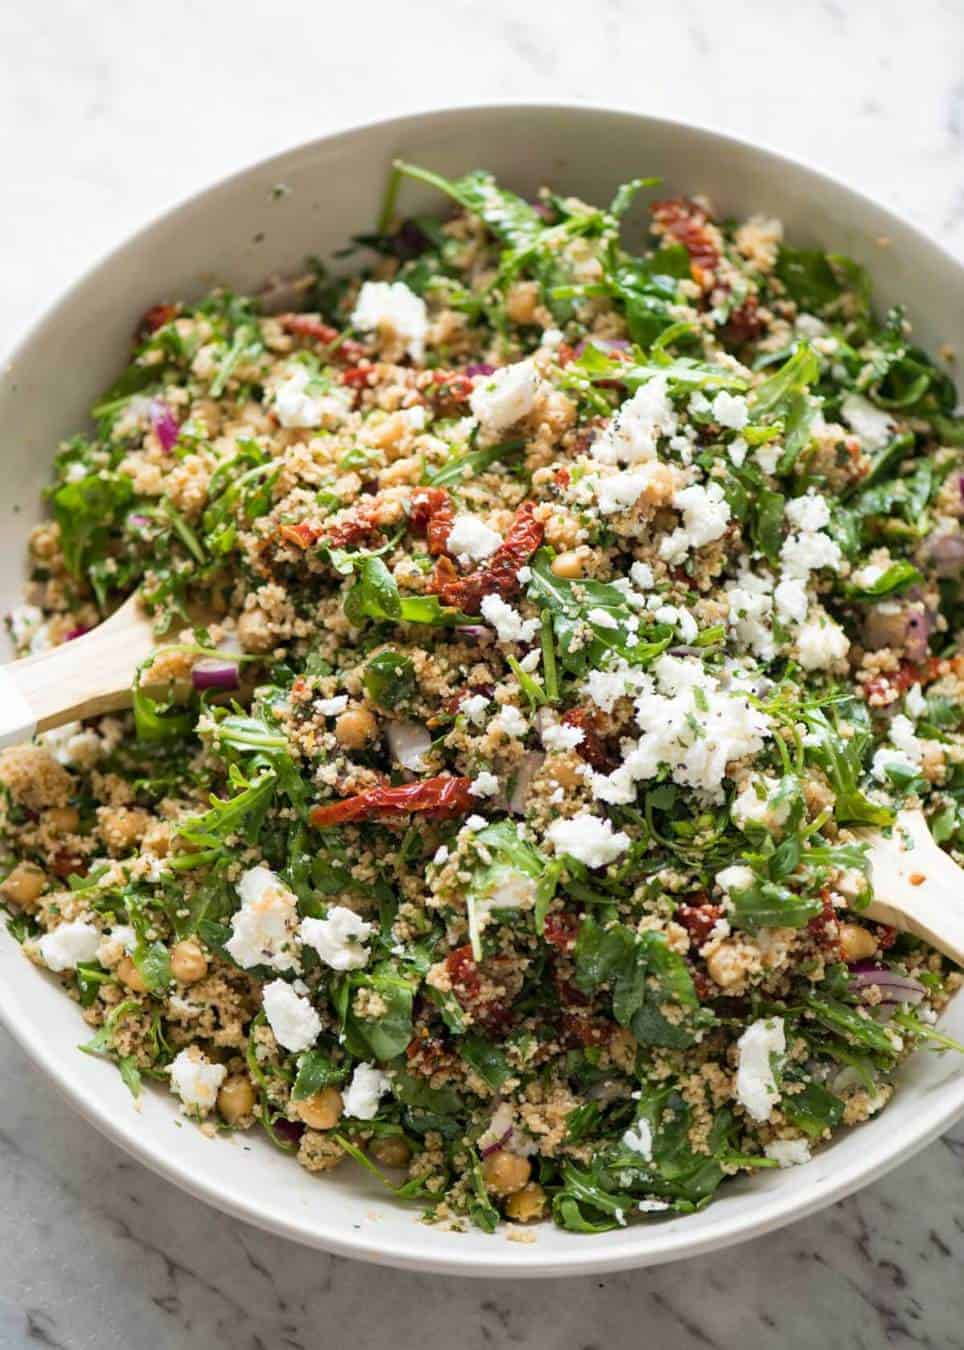 The best 12 minute salad in the world: Couscous Salad with Sun Dried Tomatoes and Feta www.recipetineats.com